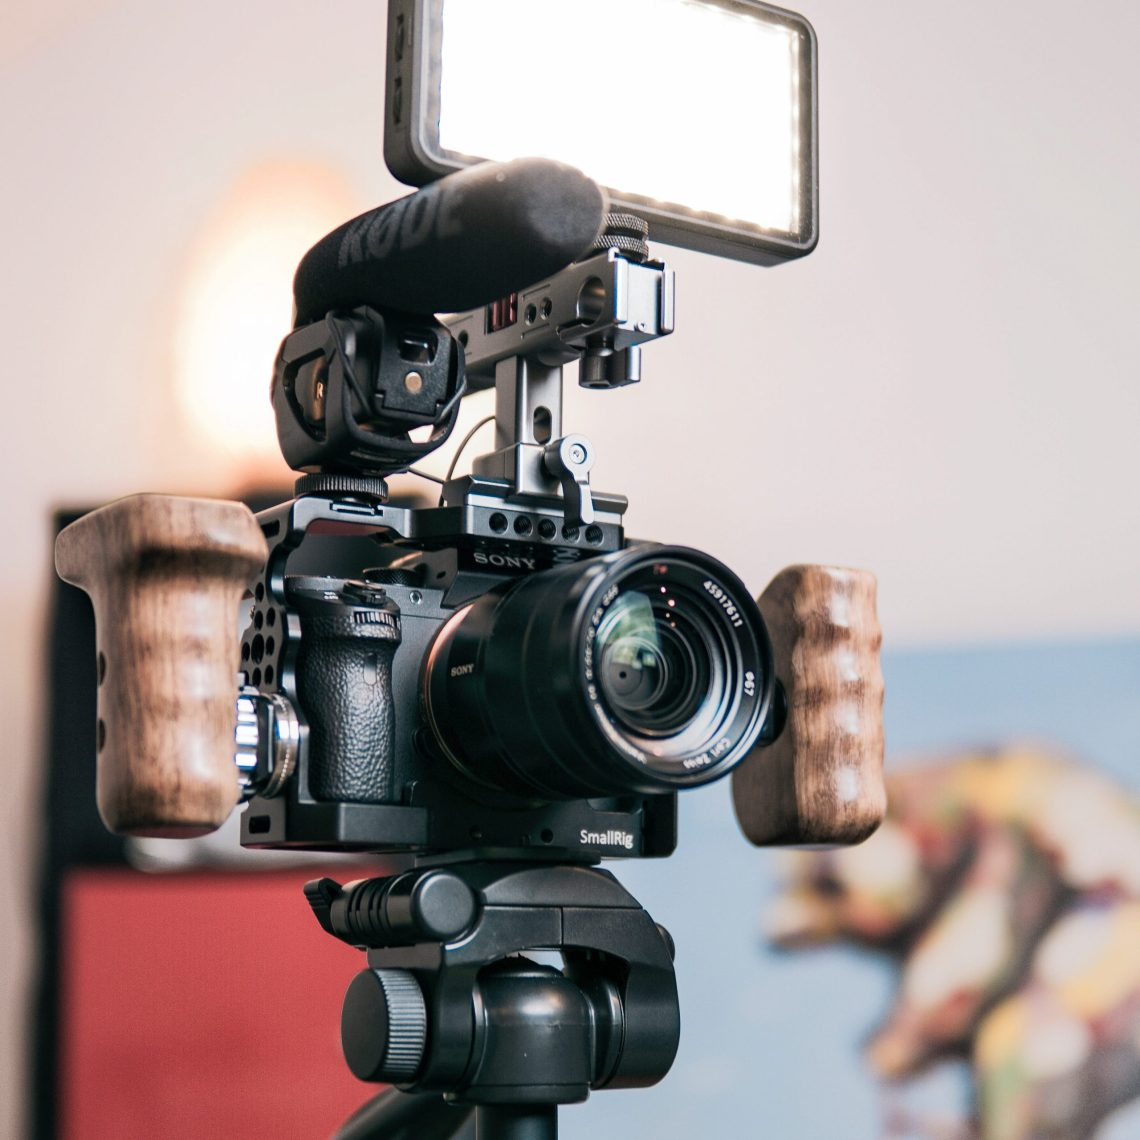 This is what a typical YouTube video set up might look like - this picture features a DSLR, a light and a microphone.